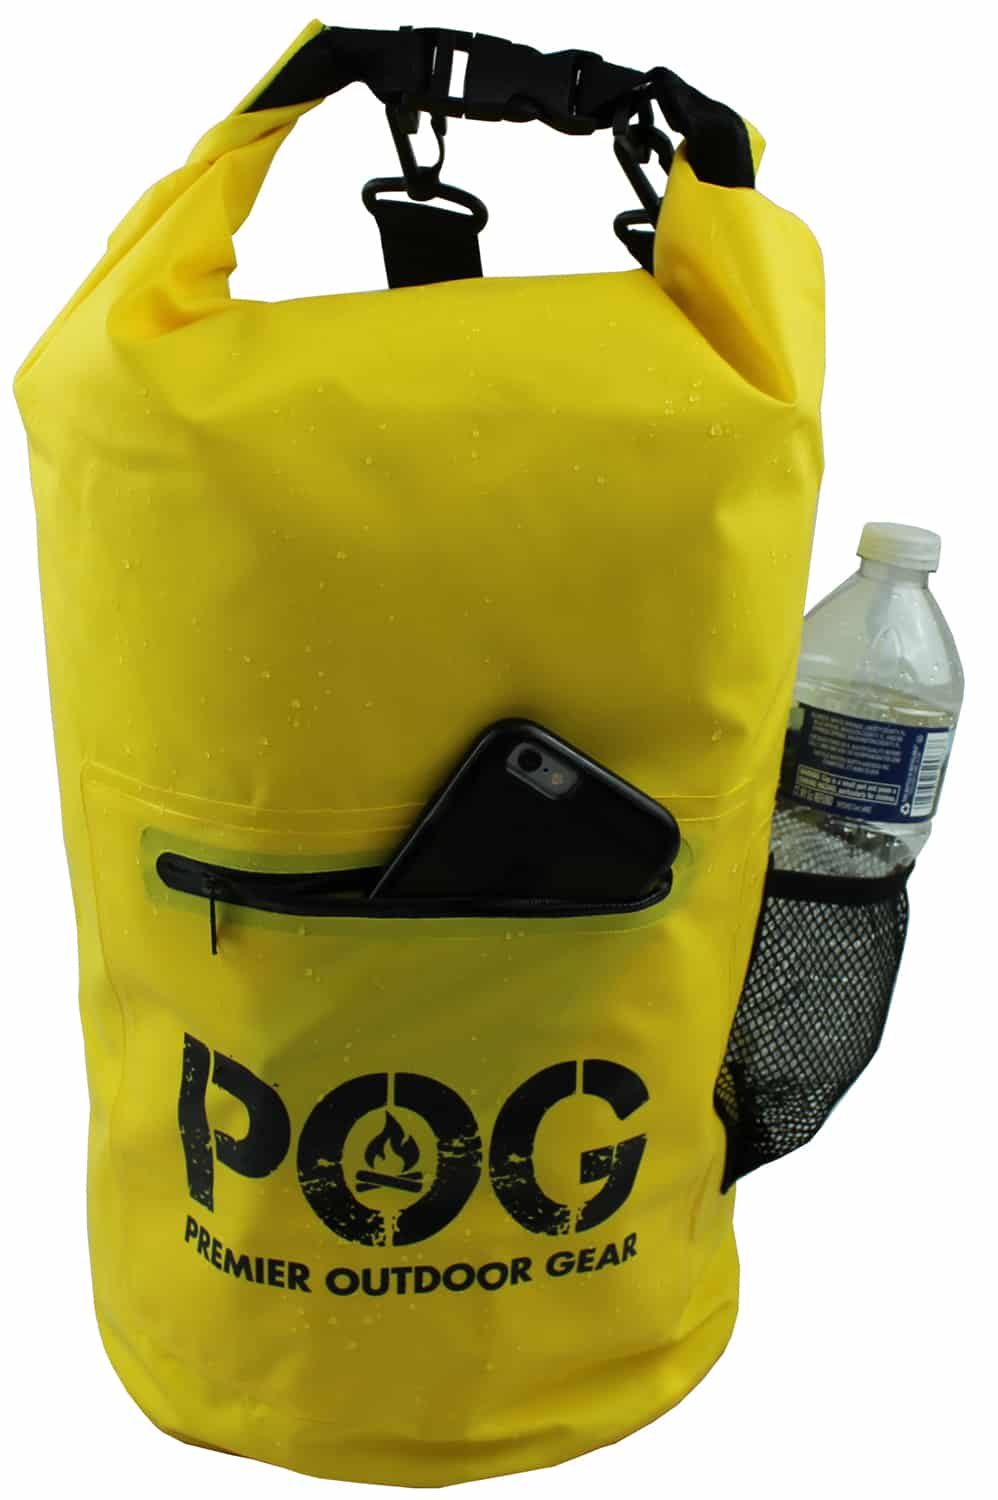 Waterproof Dry Bag Premier Outdoor Gear